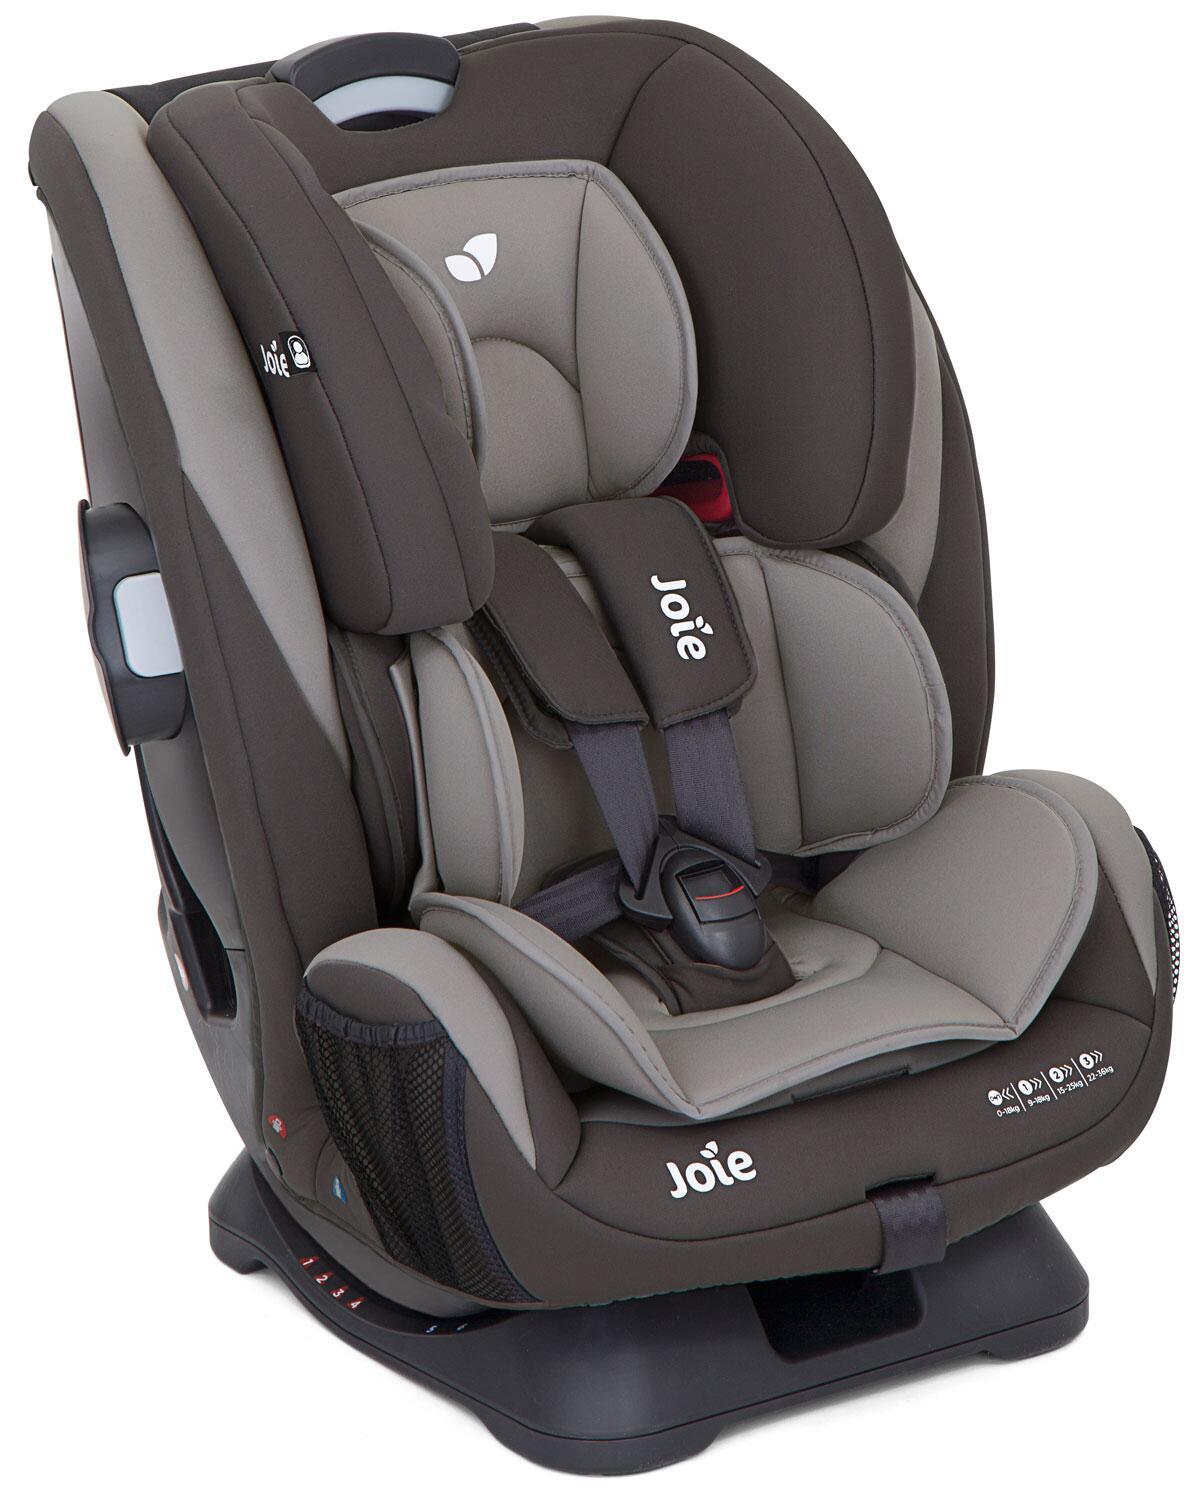 Joie Every Stage Car Seat Gr 0 1 2 3 Algateckids Com